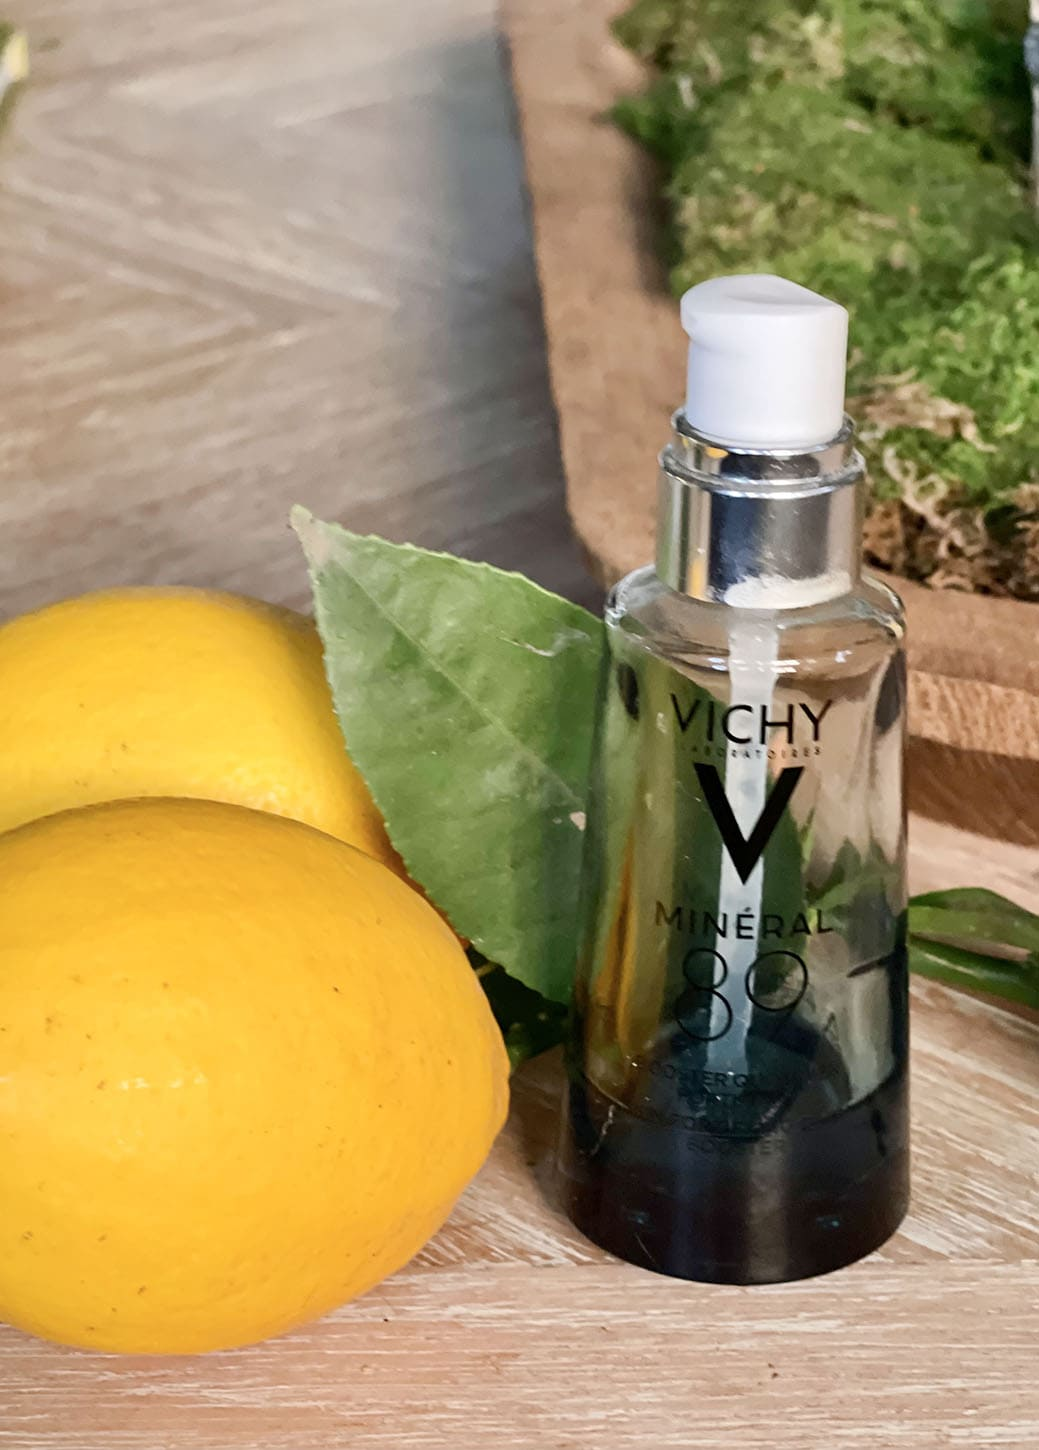 Vichy Mineral 89 on Cindy Hattersley's blog